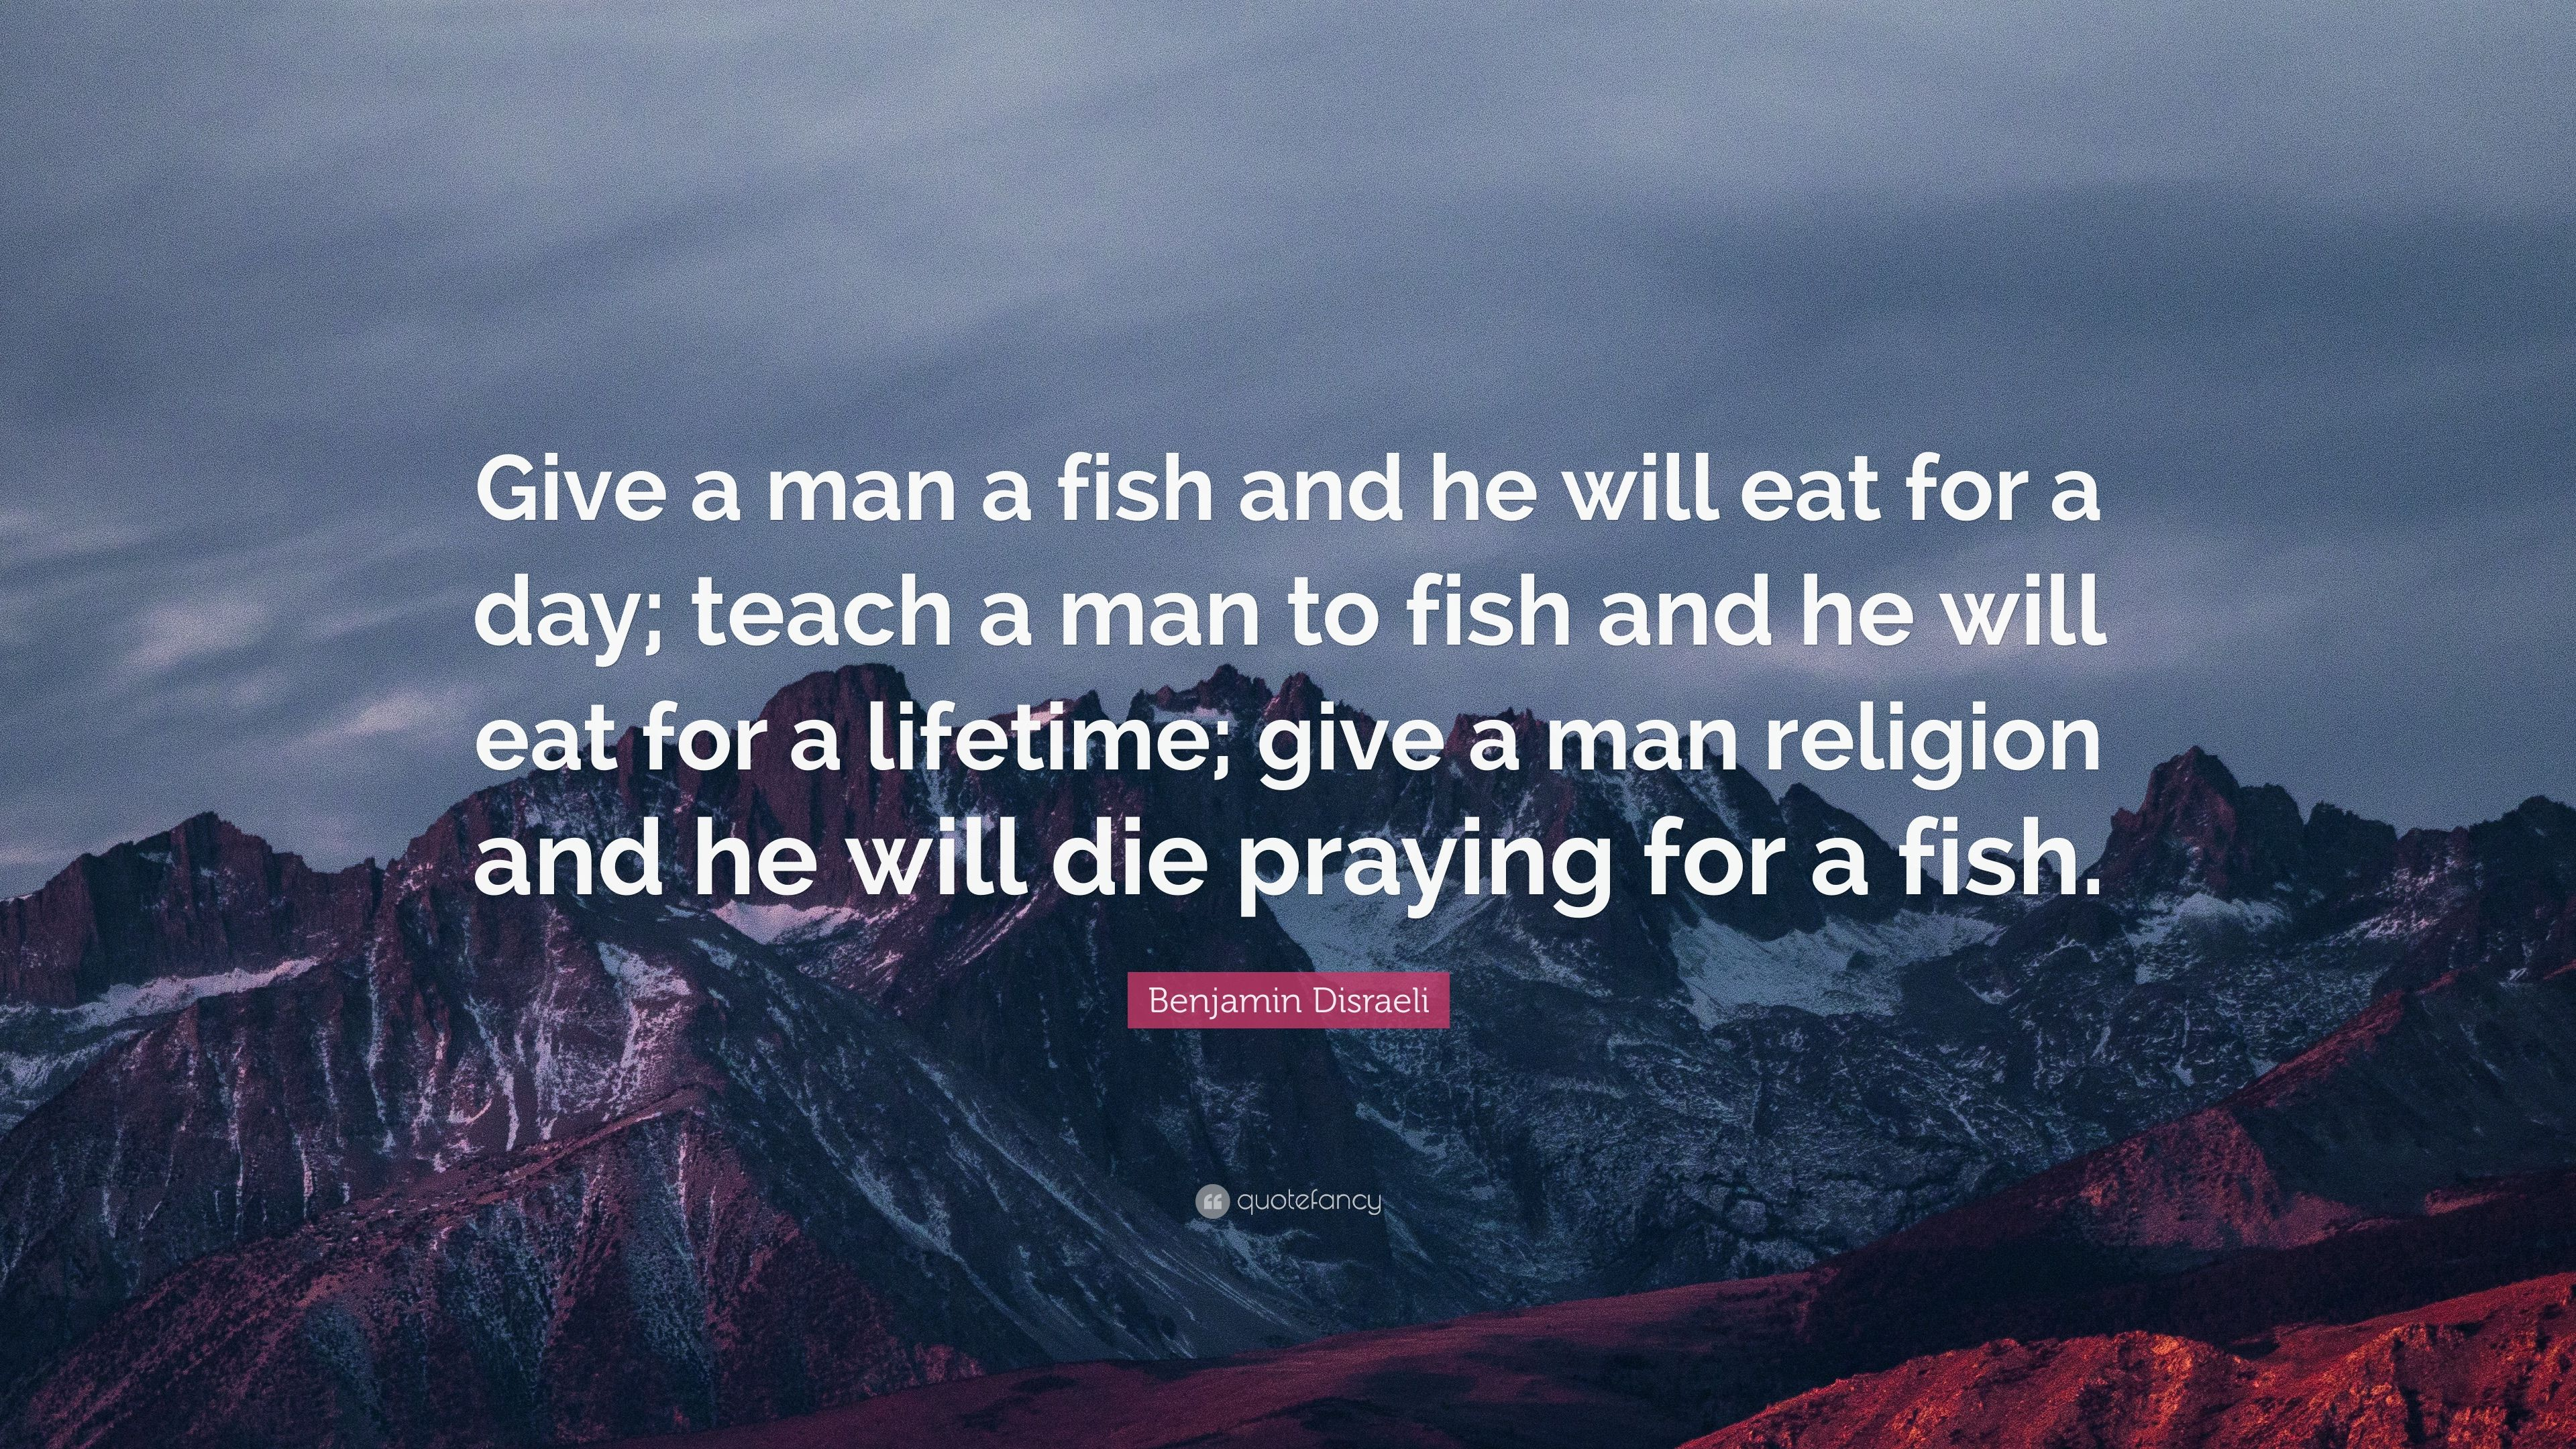 Scott Adams Quote: Give a man a fish, and youll feed him